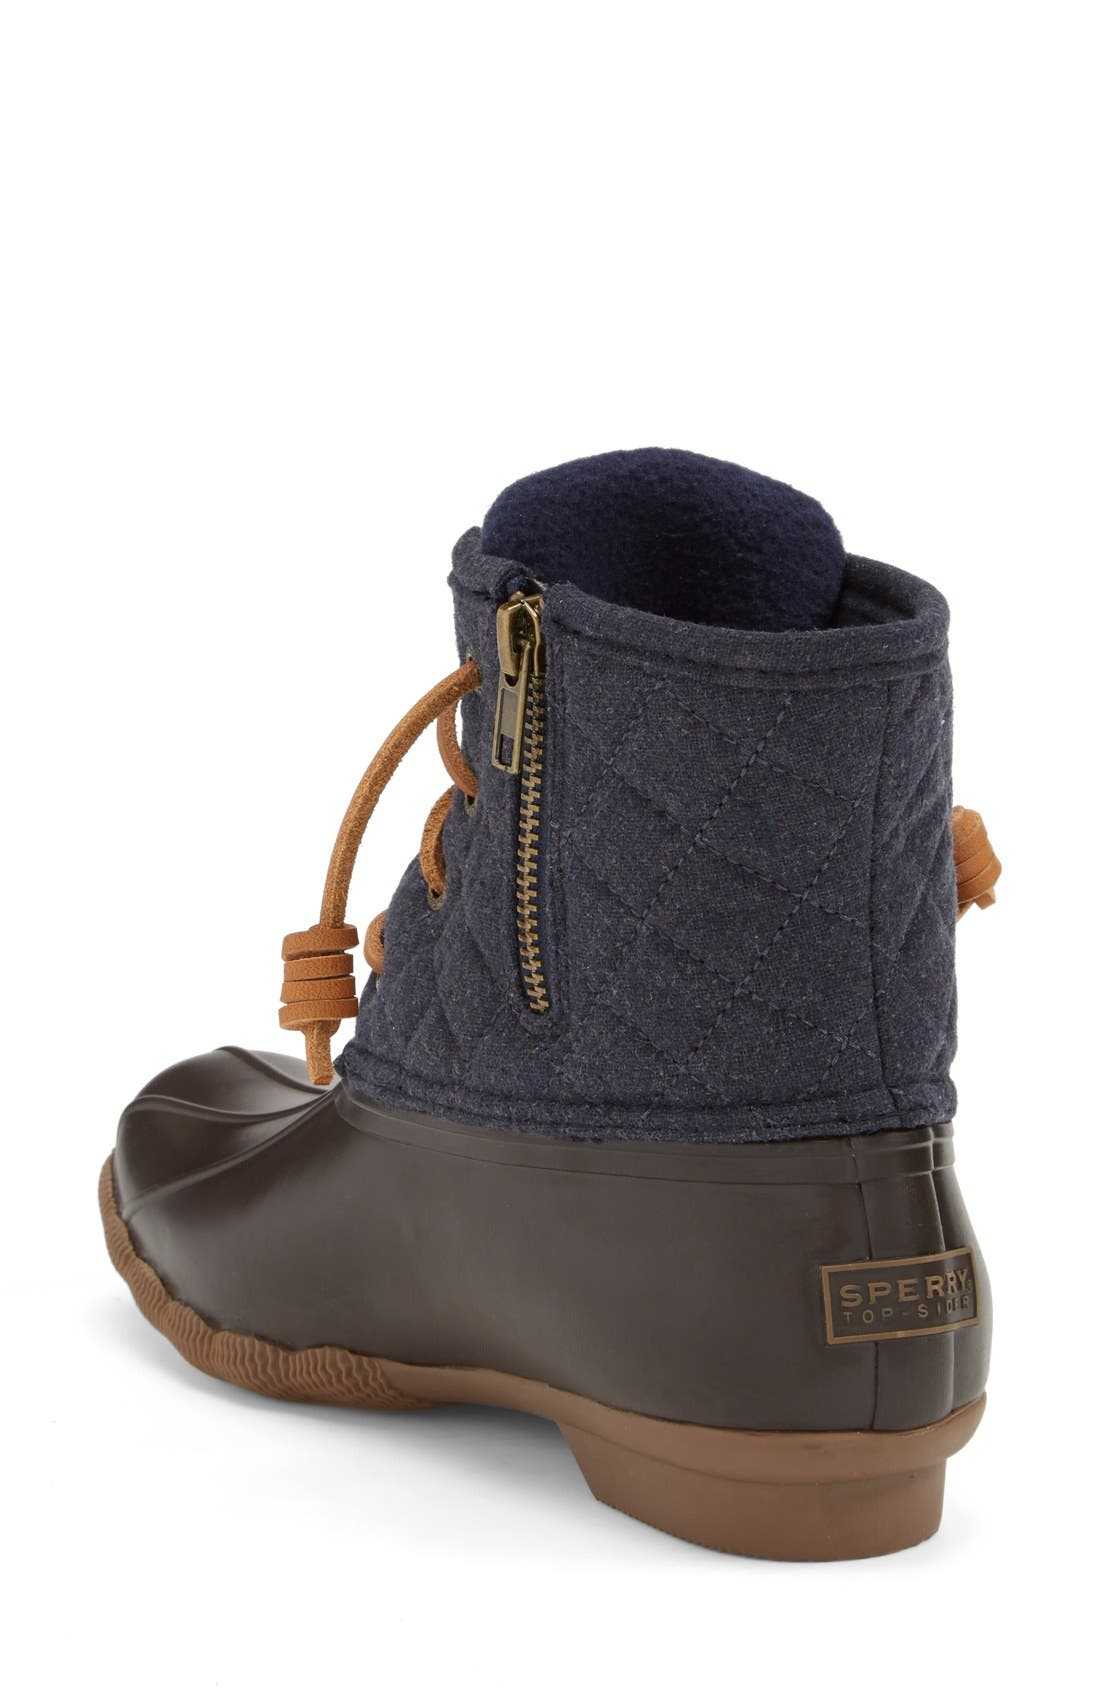 Alternate Image 2  - Sperry 'Saltwater' Waterproof Rain Boot (Women) (Nordstrom Exclusive)